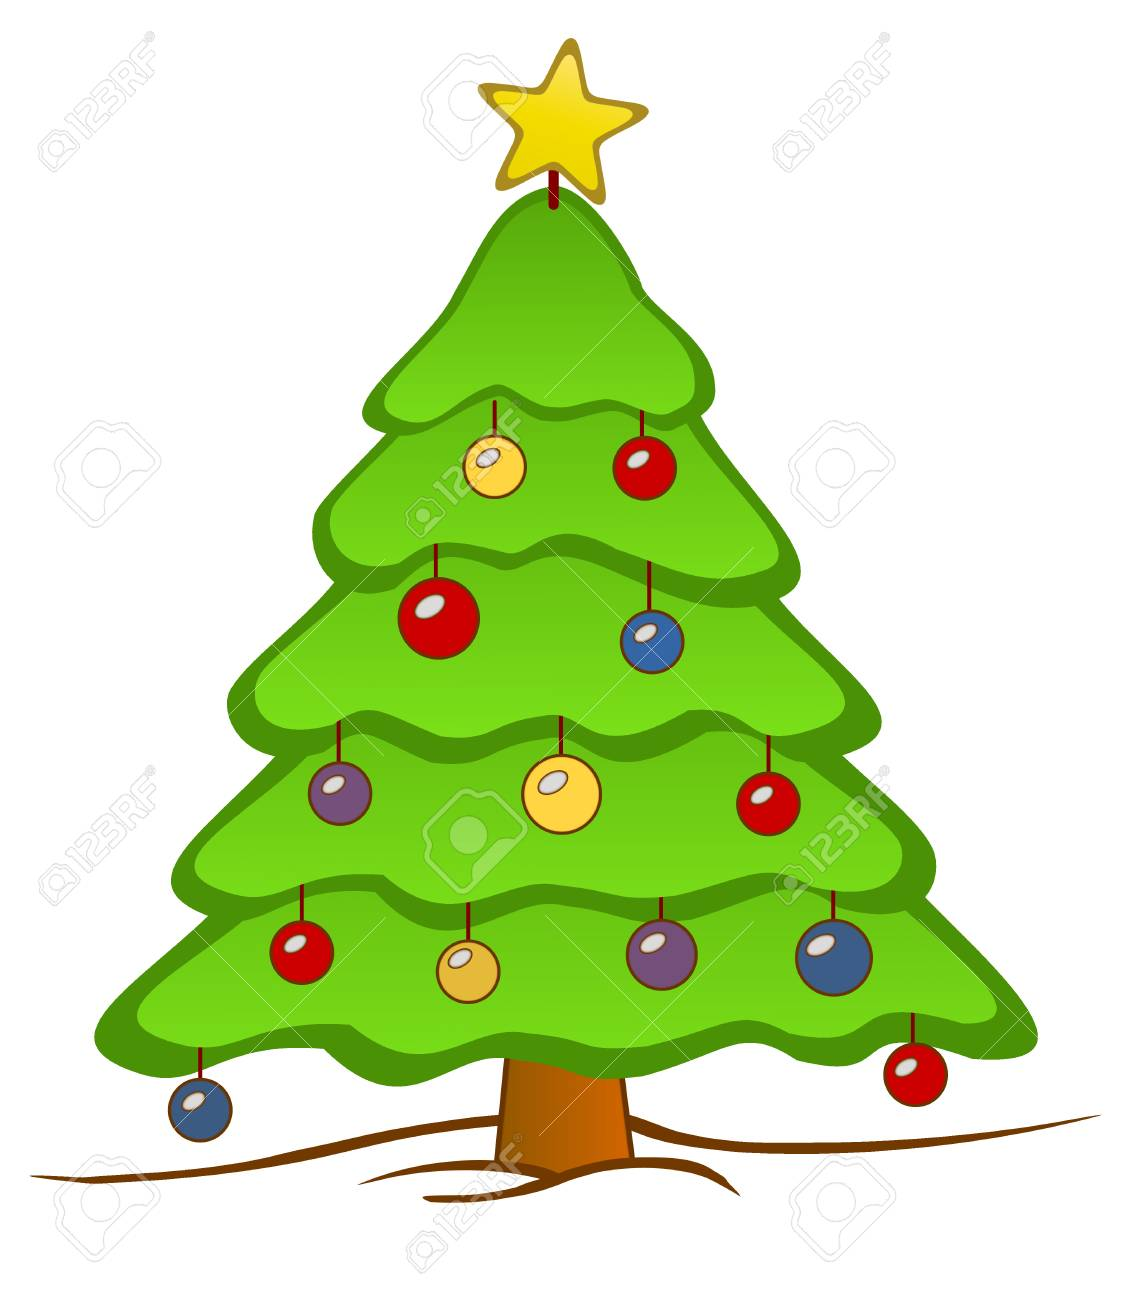 An Isolated Christmas Tree With A Star On Top And Colorful